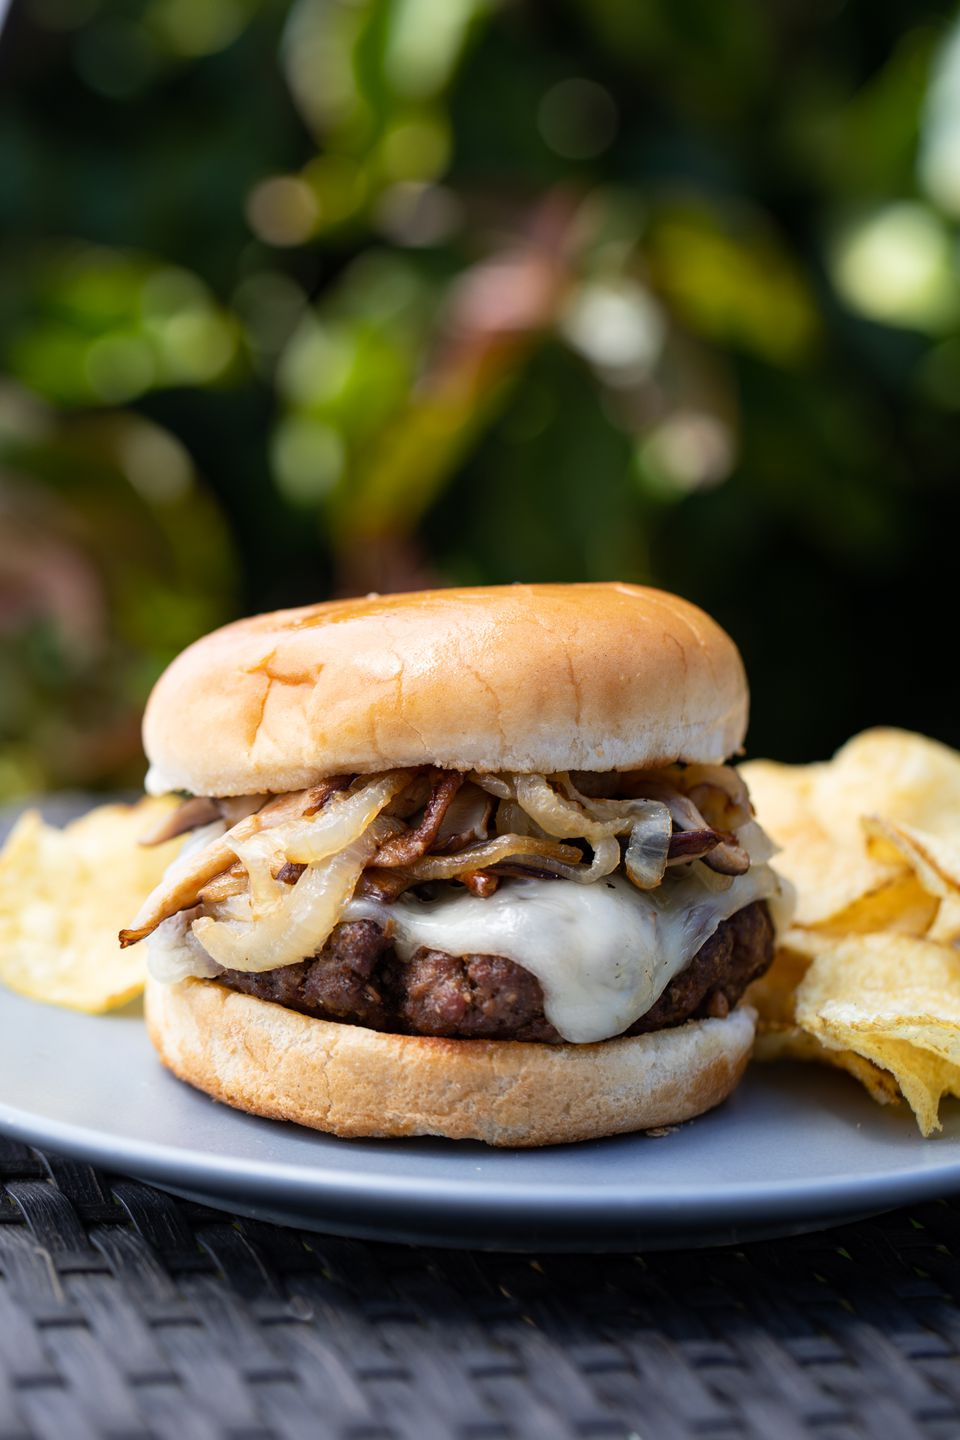 Side view of a mushroom and swiss burger on a plate with chips outside.